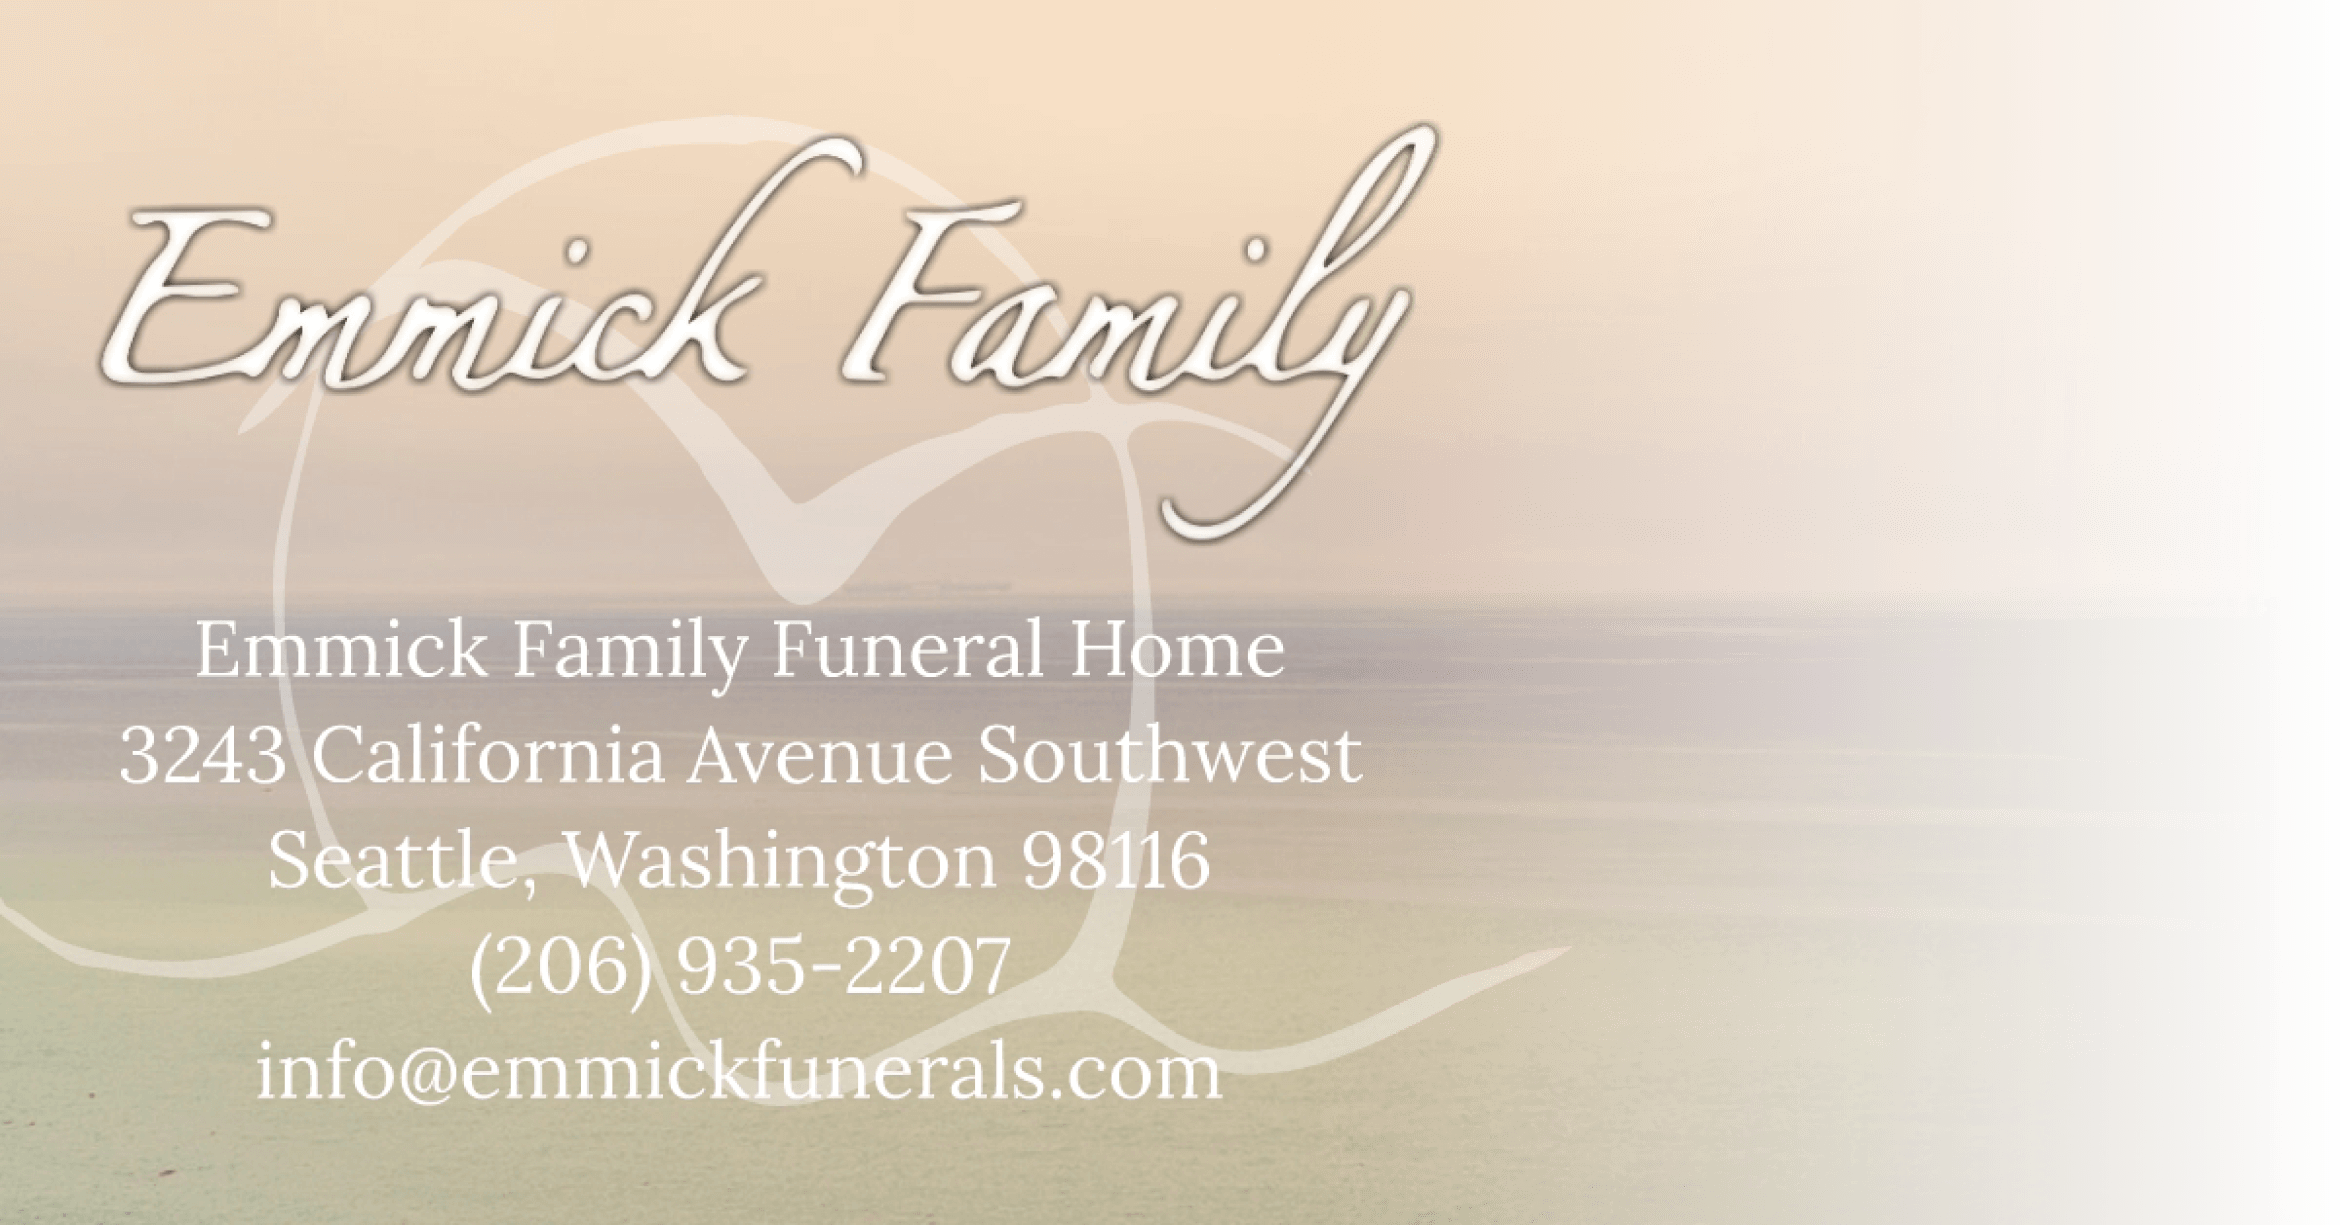 All Obituaries | Emmick Family Funeral & Cremation Services